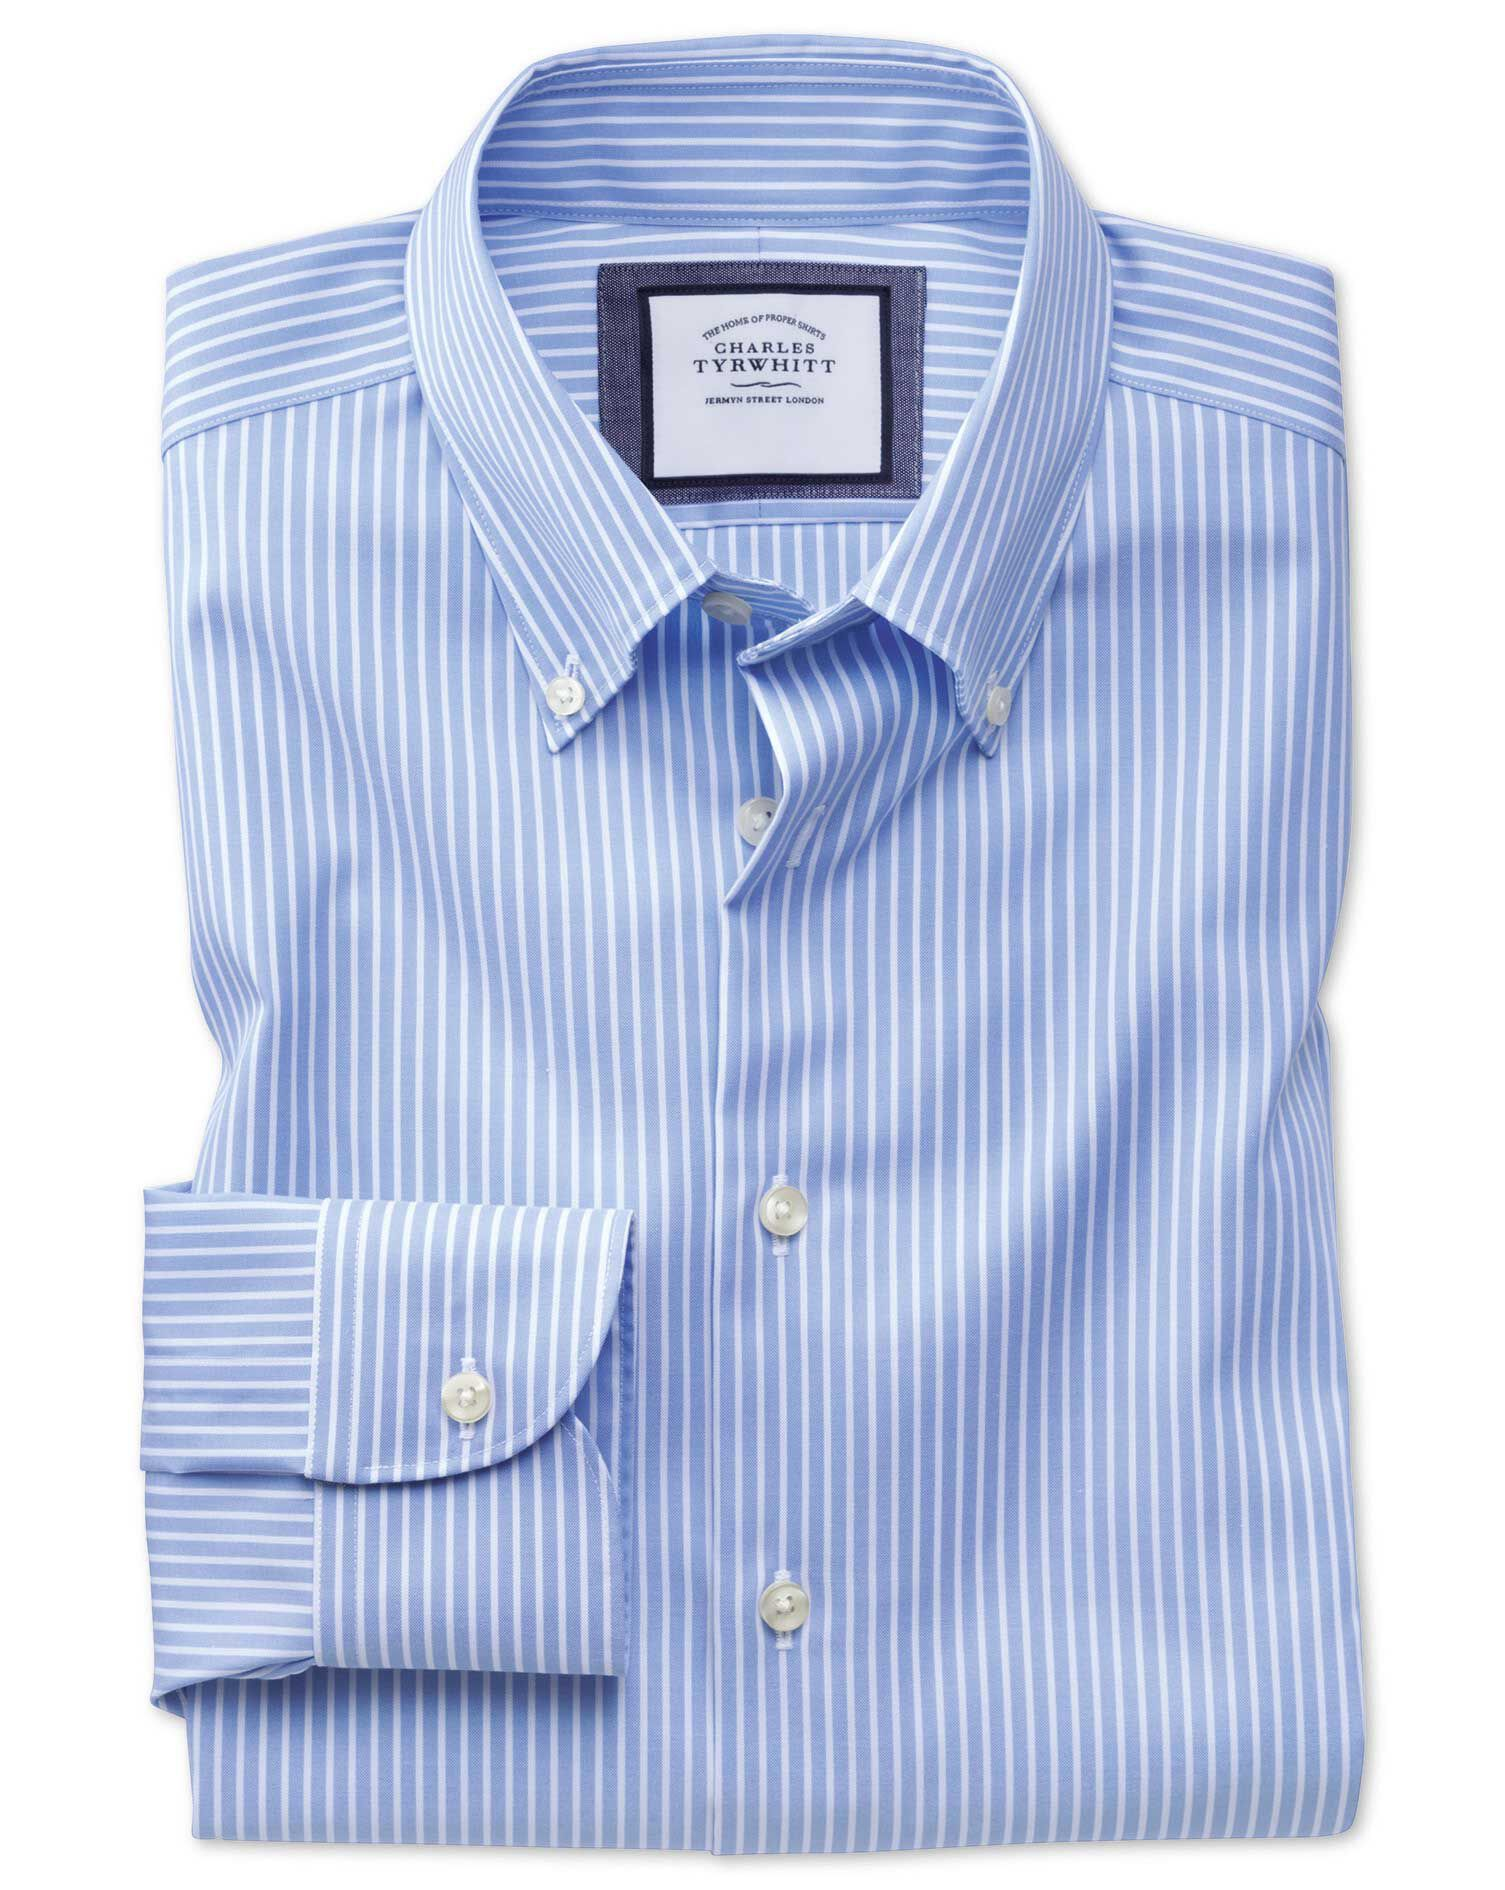 Extra Slim Fit Business Casual Non Iron Button-Down Stripe Sky and White Cotton Formal Shirt Single